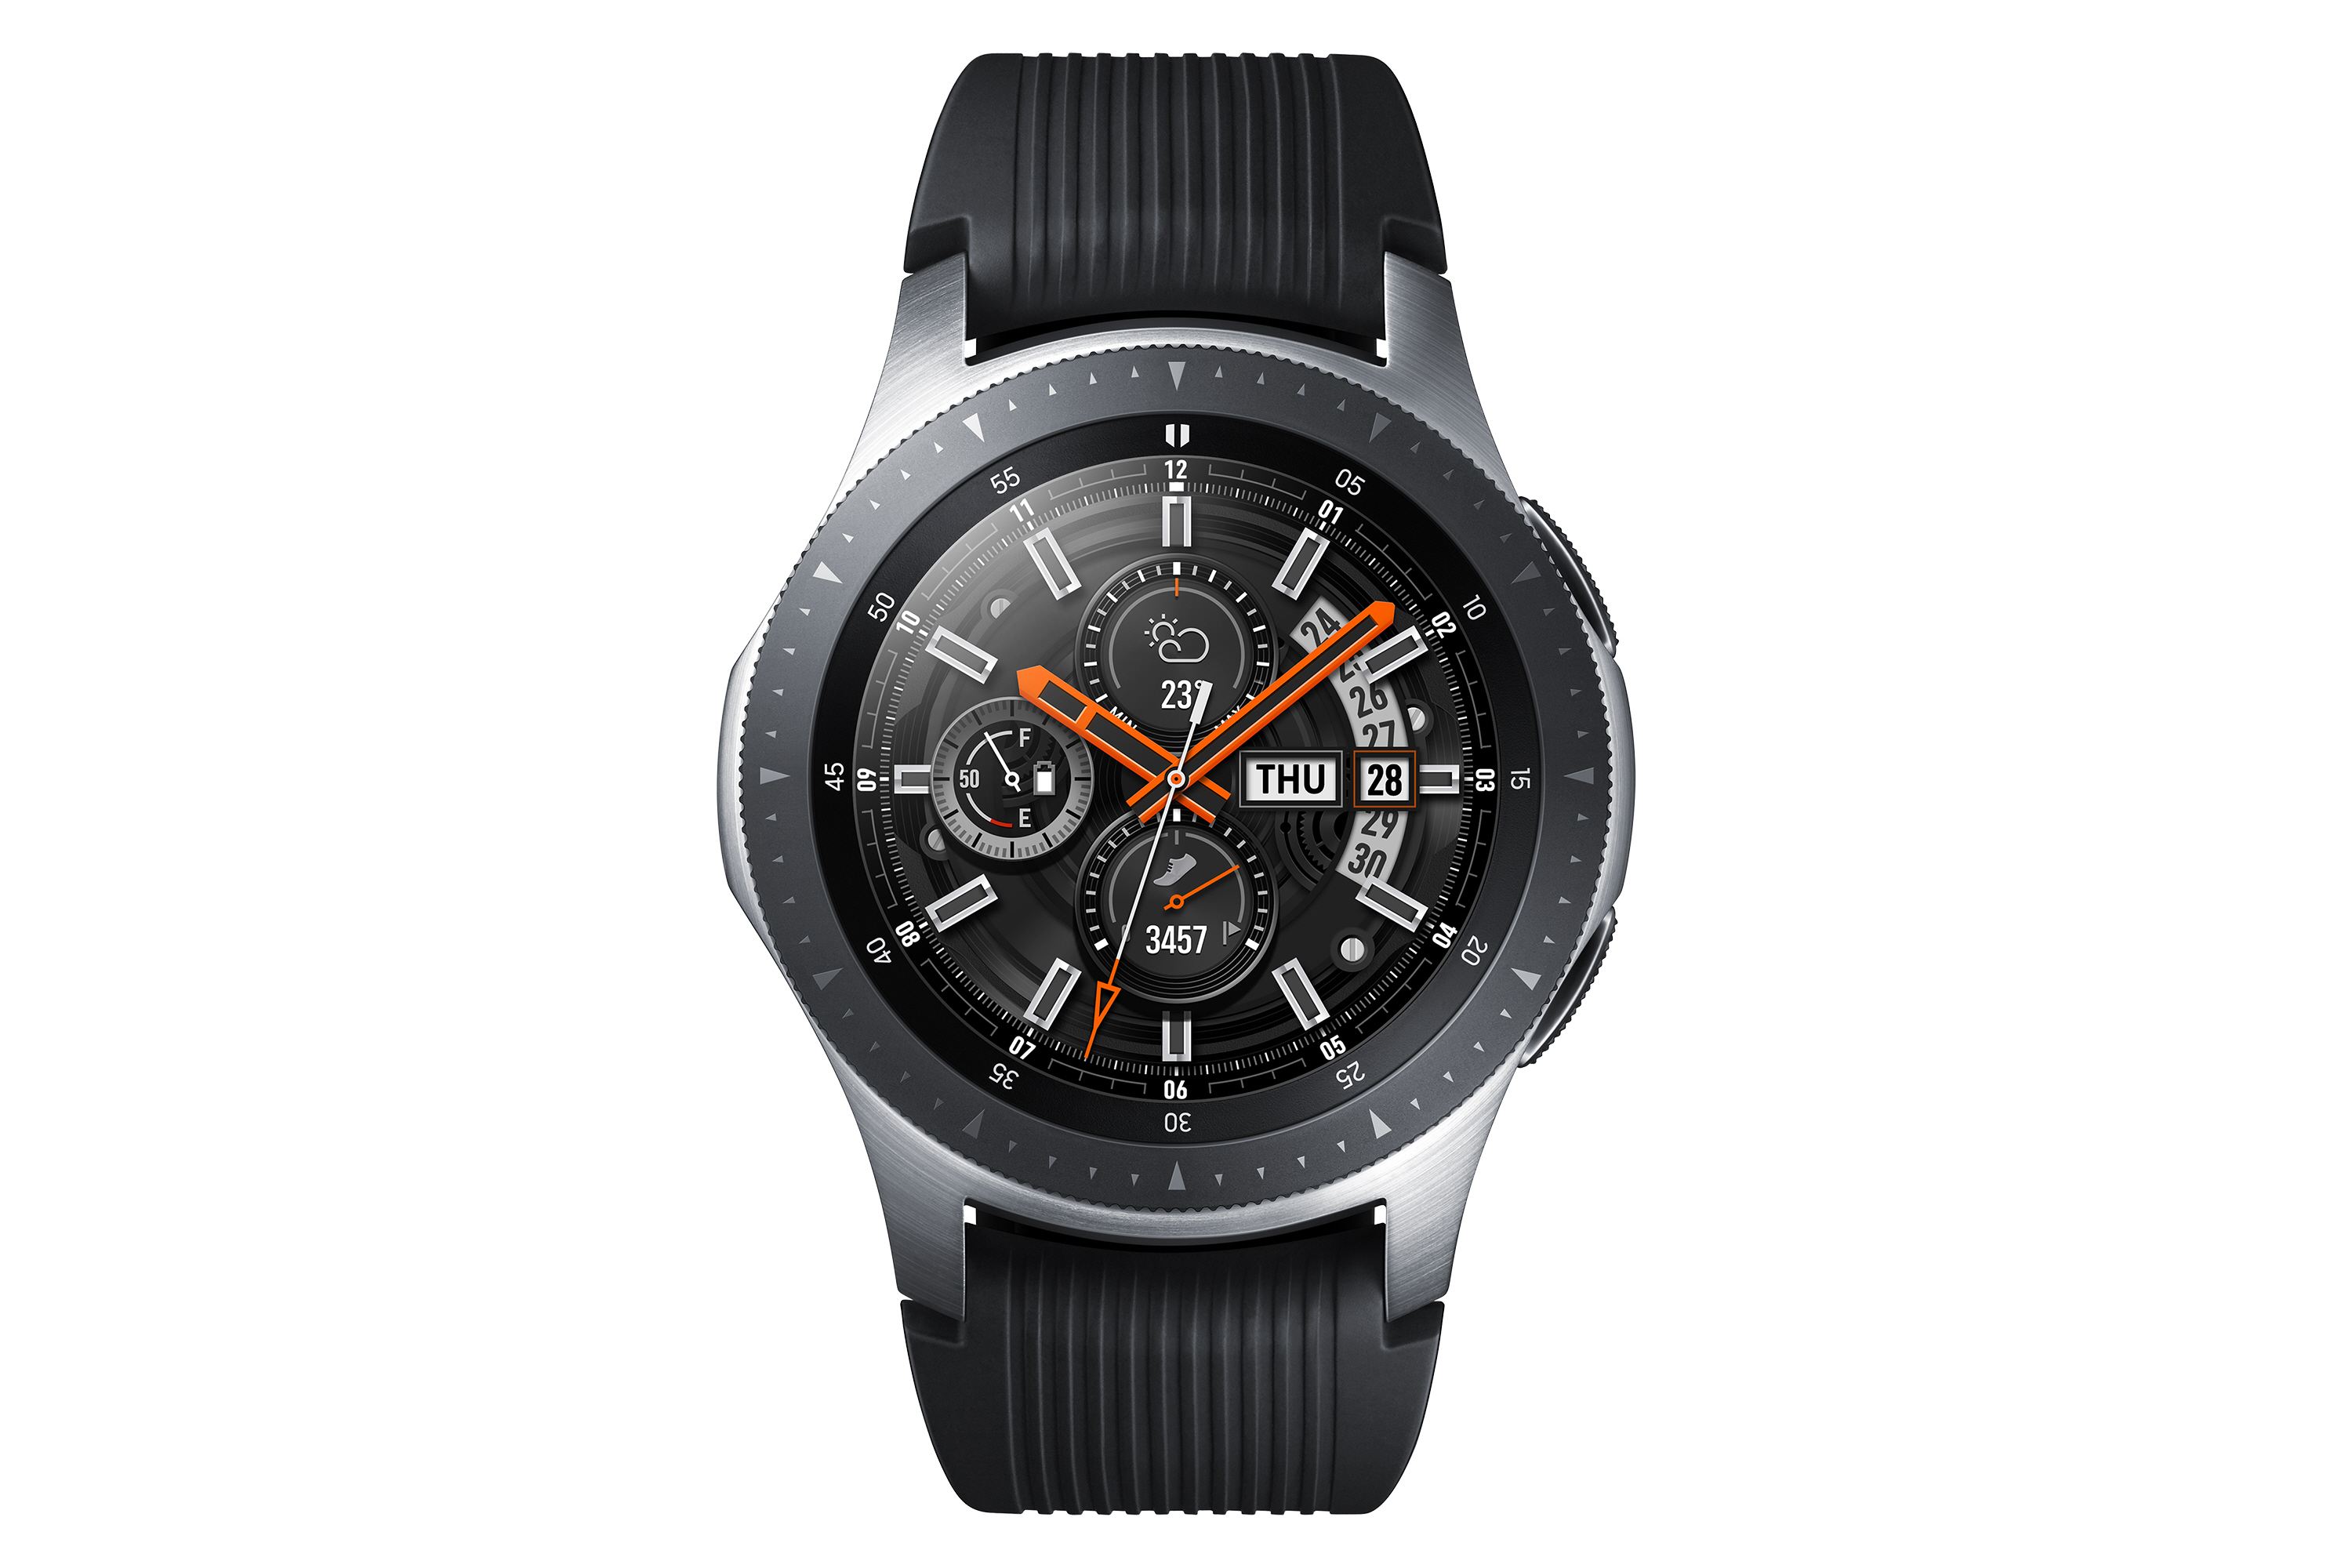 Samsung Unveils Its Latest Smartwatch The Galaxy Watch The Verge